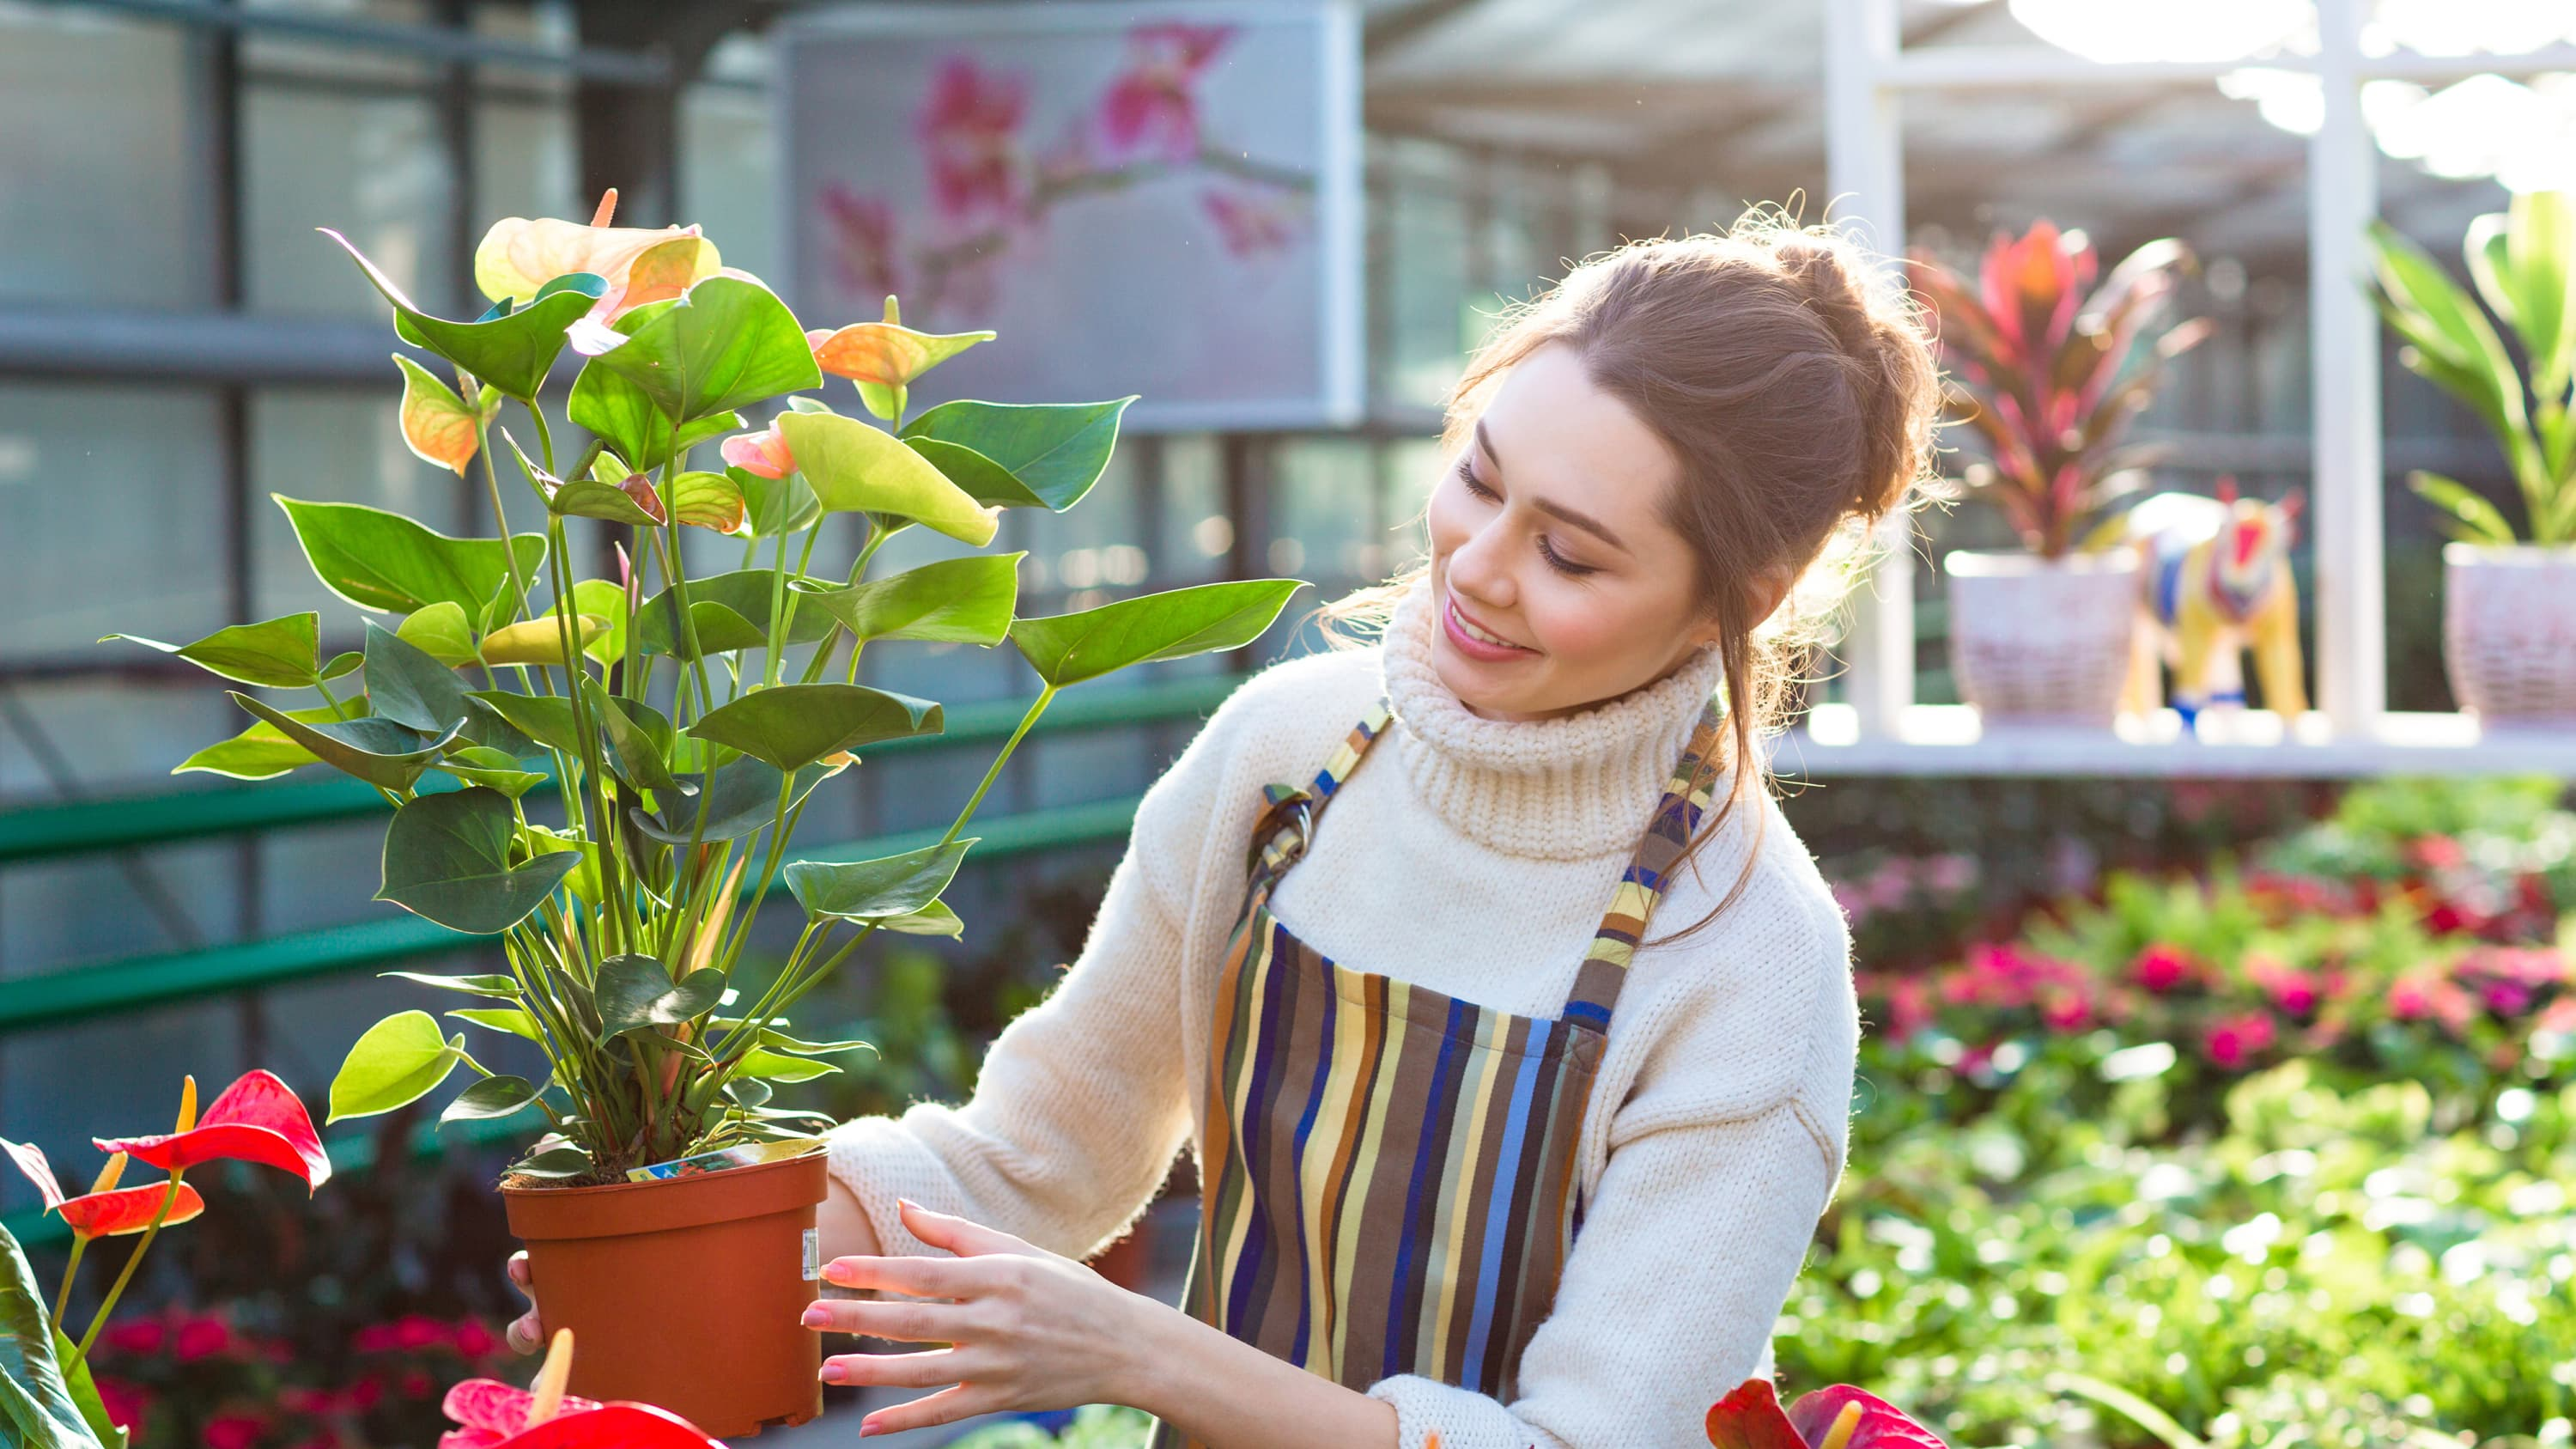 A woman is gardening with a striped apron on, she is inspecting a potted plant who could be wearing sunscreen to prevent squamous cell carcinoma